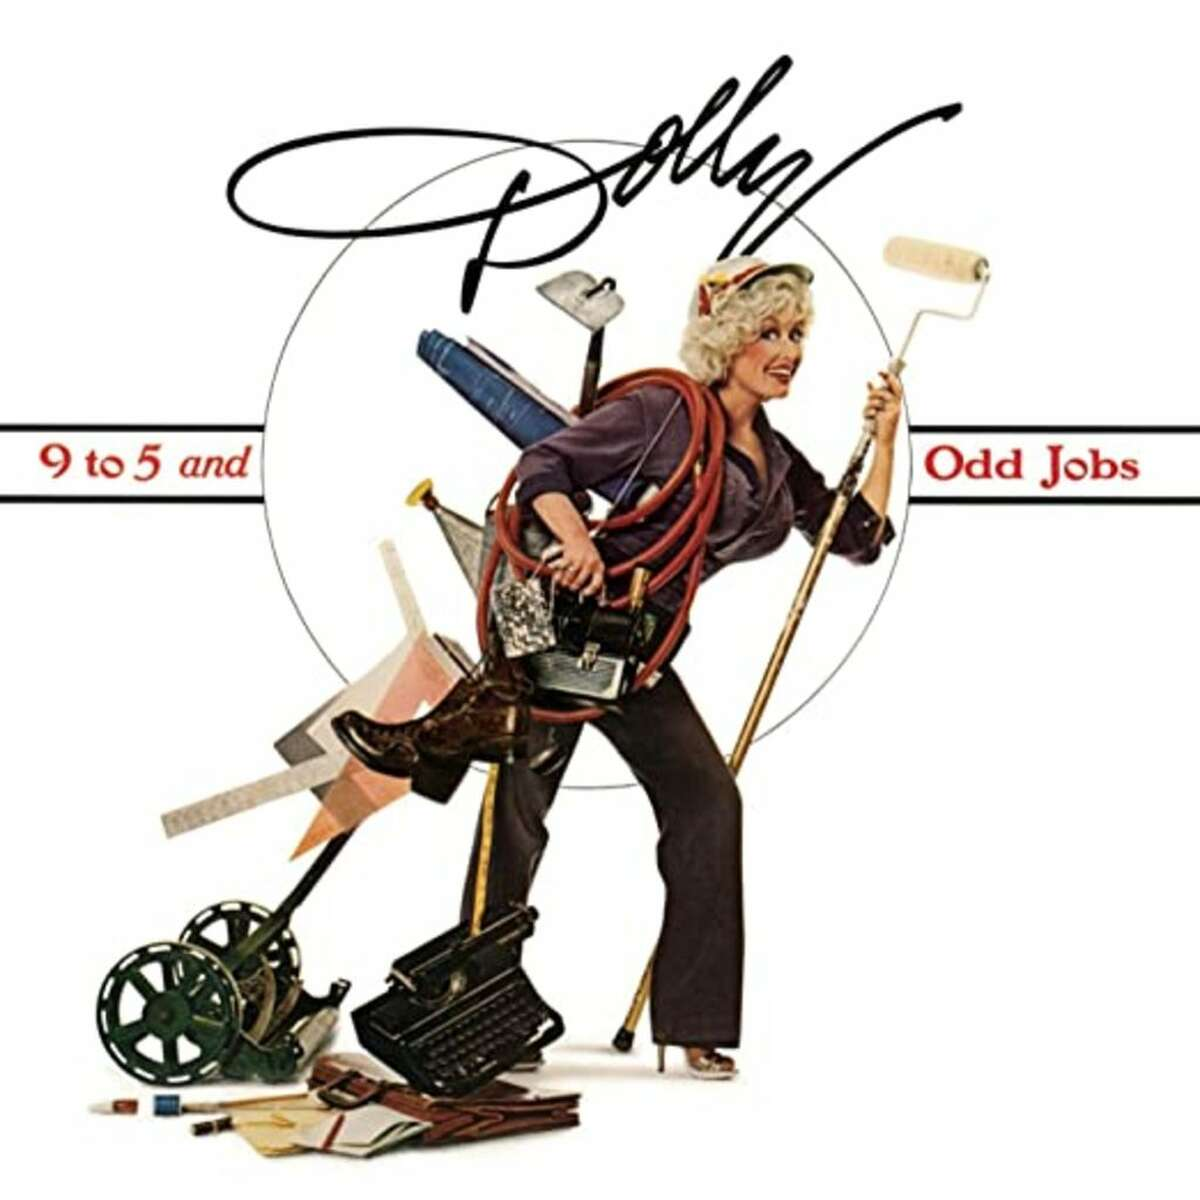 9 t0 5 and Odd Jobs Dolly Parton Hits: 9 t0 5, But You Know I Love You